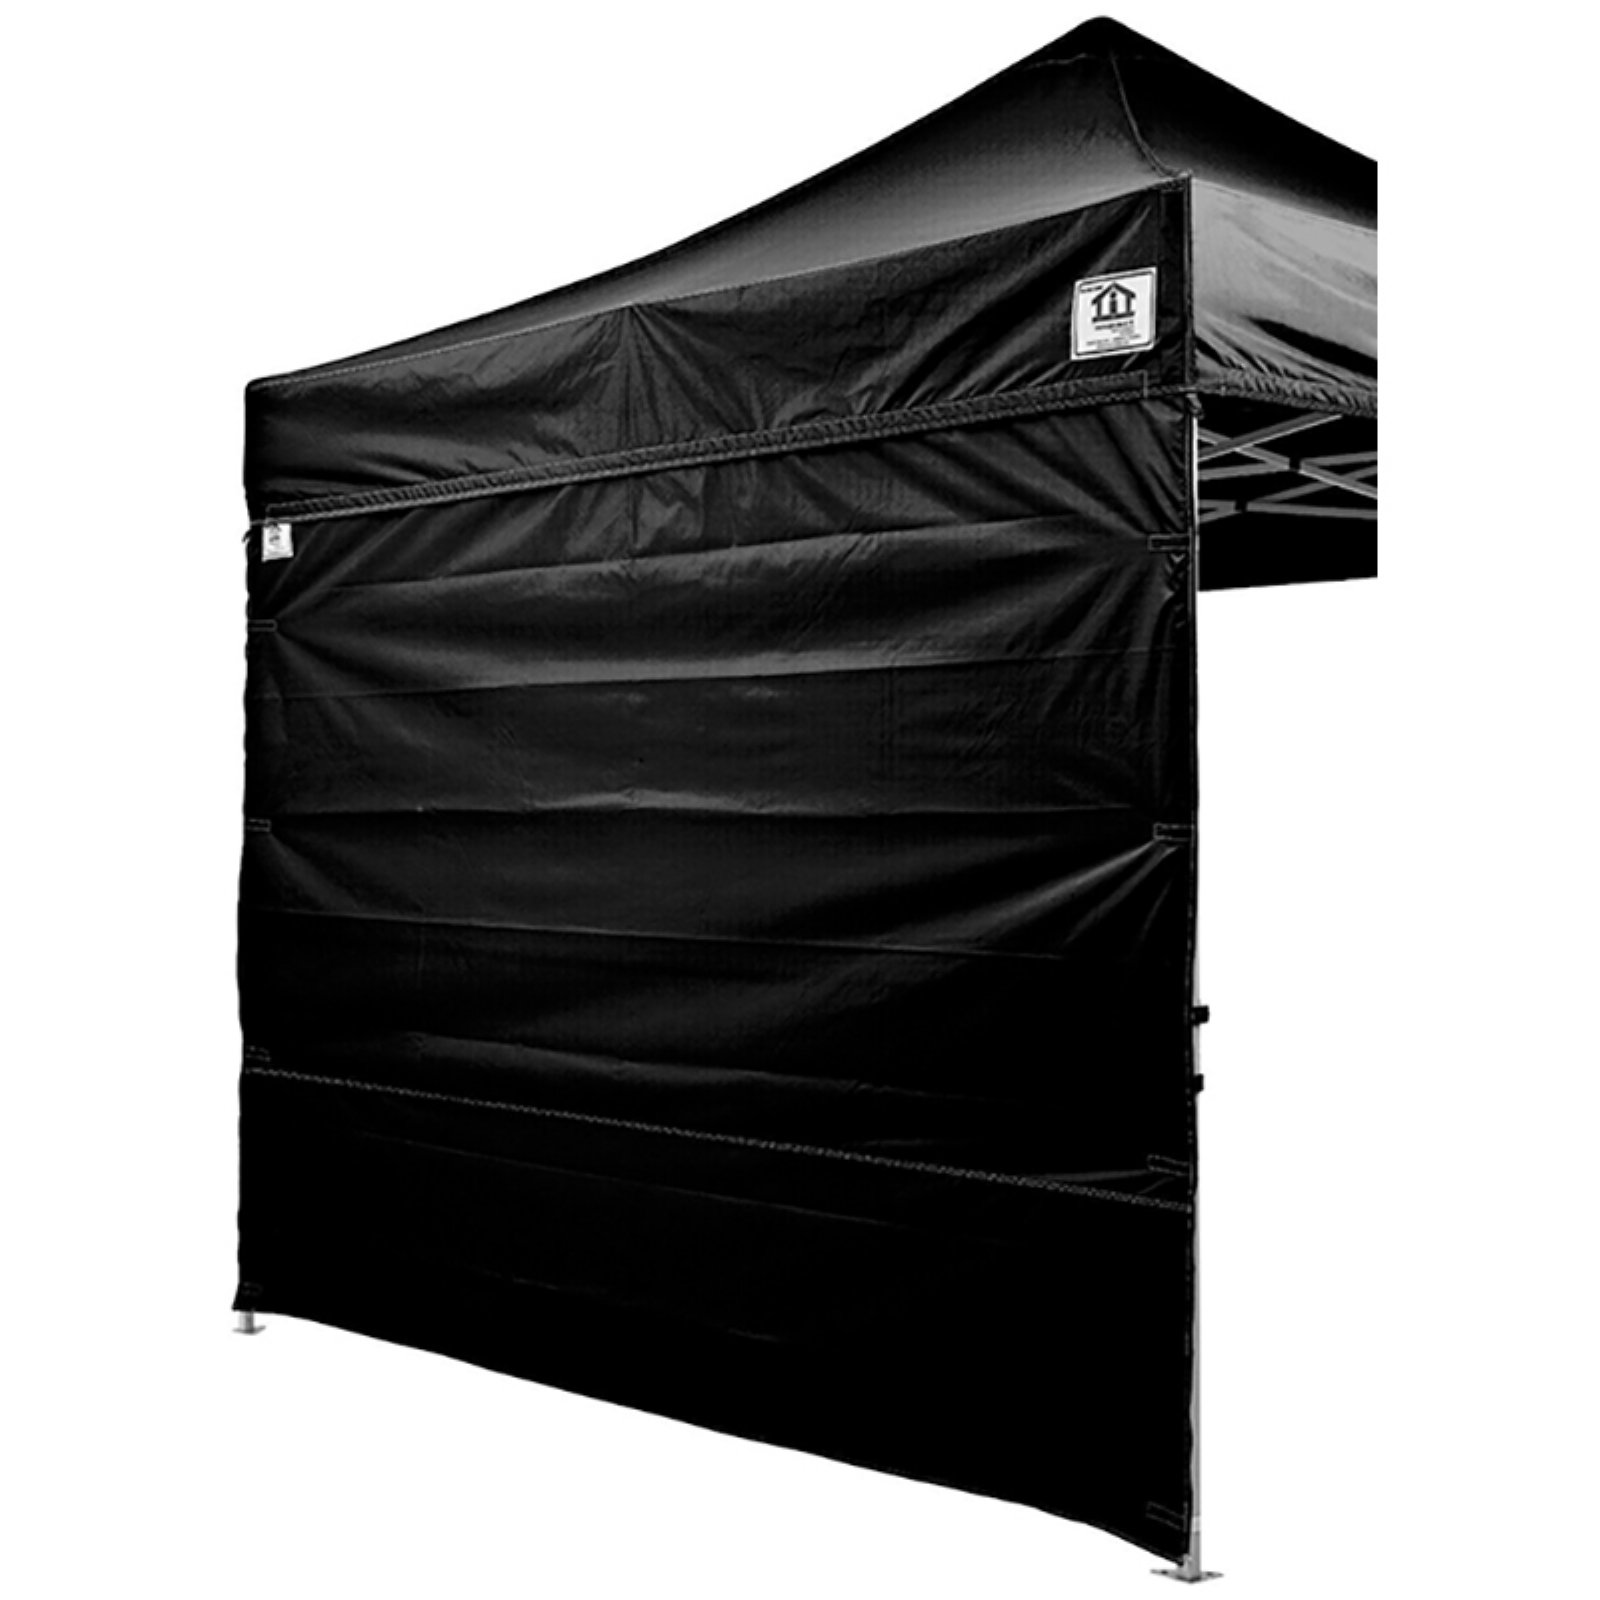 Impact Canopy Alumix 10x10 ft. Ez Pop Up Canopy Tent Instant Canopy With Roller Bag and Sidewalls